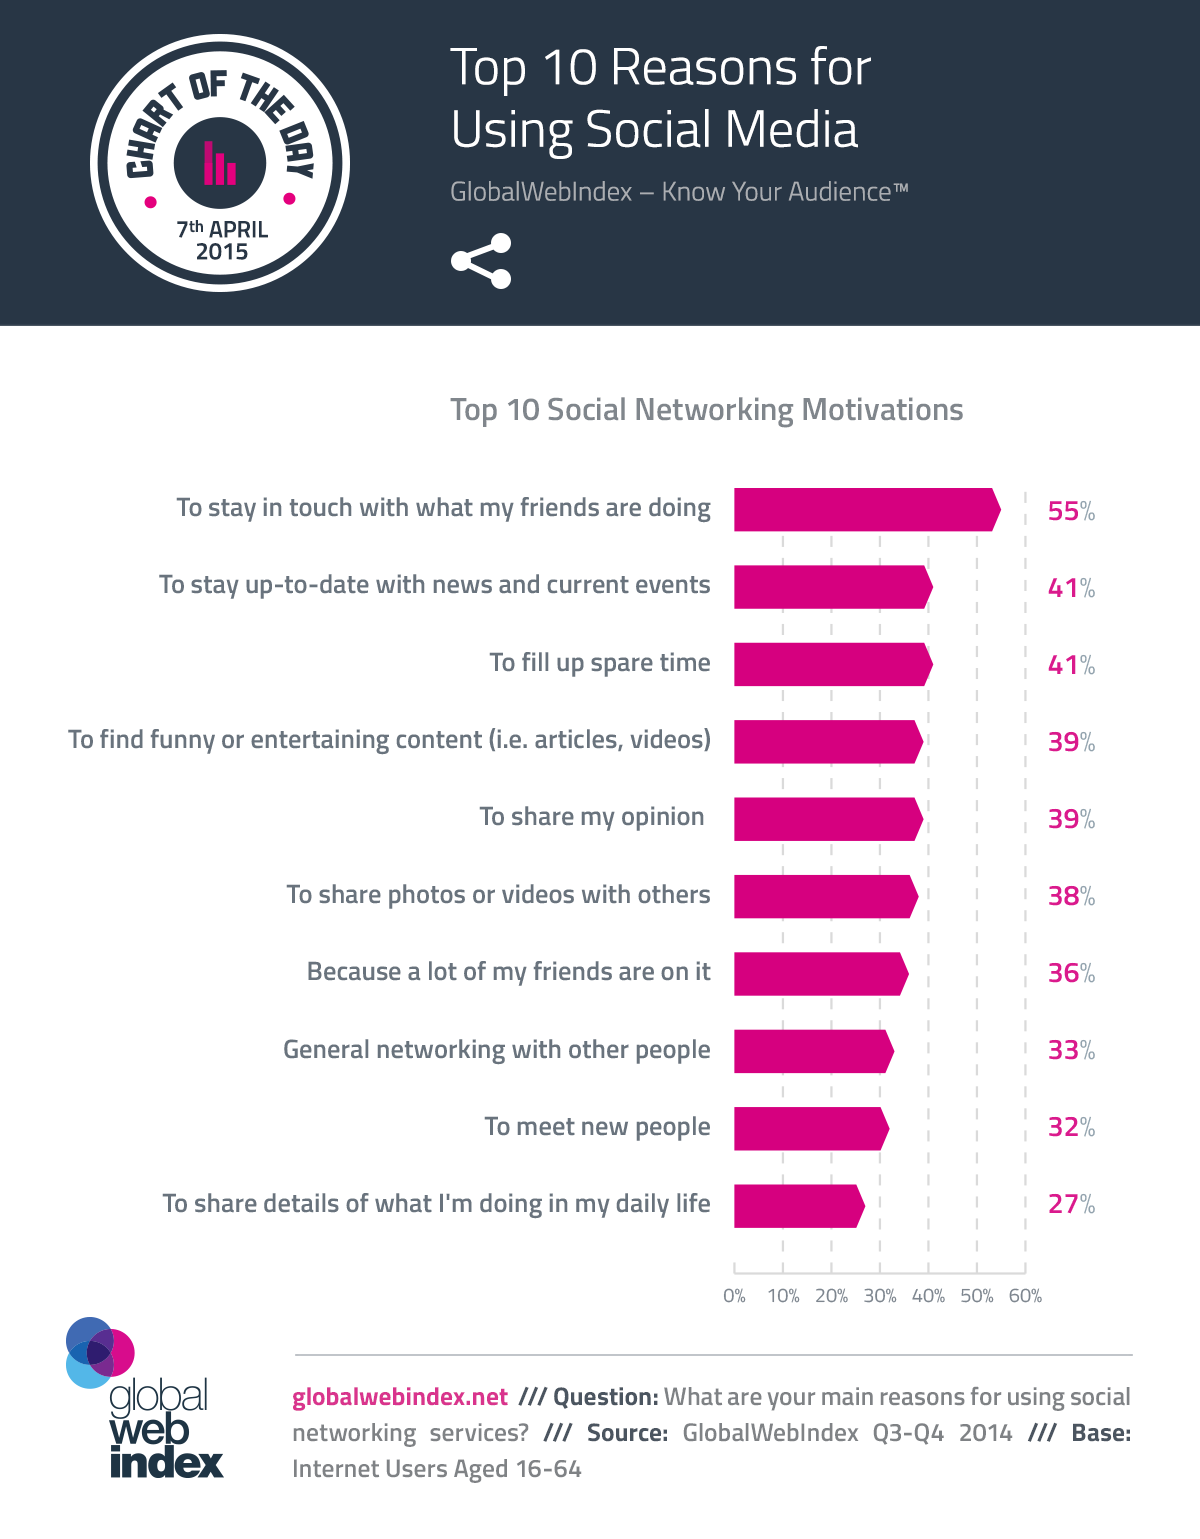 Top 10 Reasons for Using #SocialMedia - #infographic